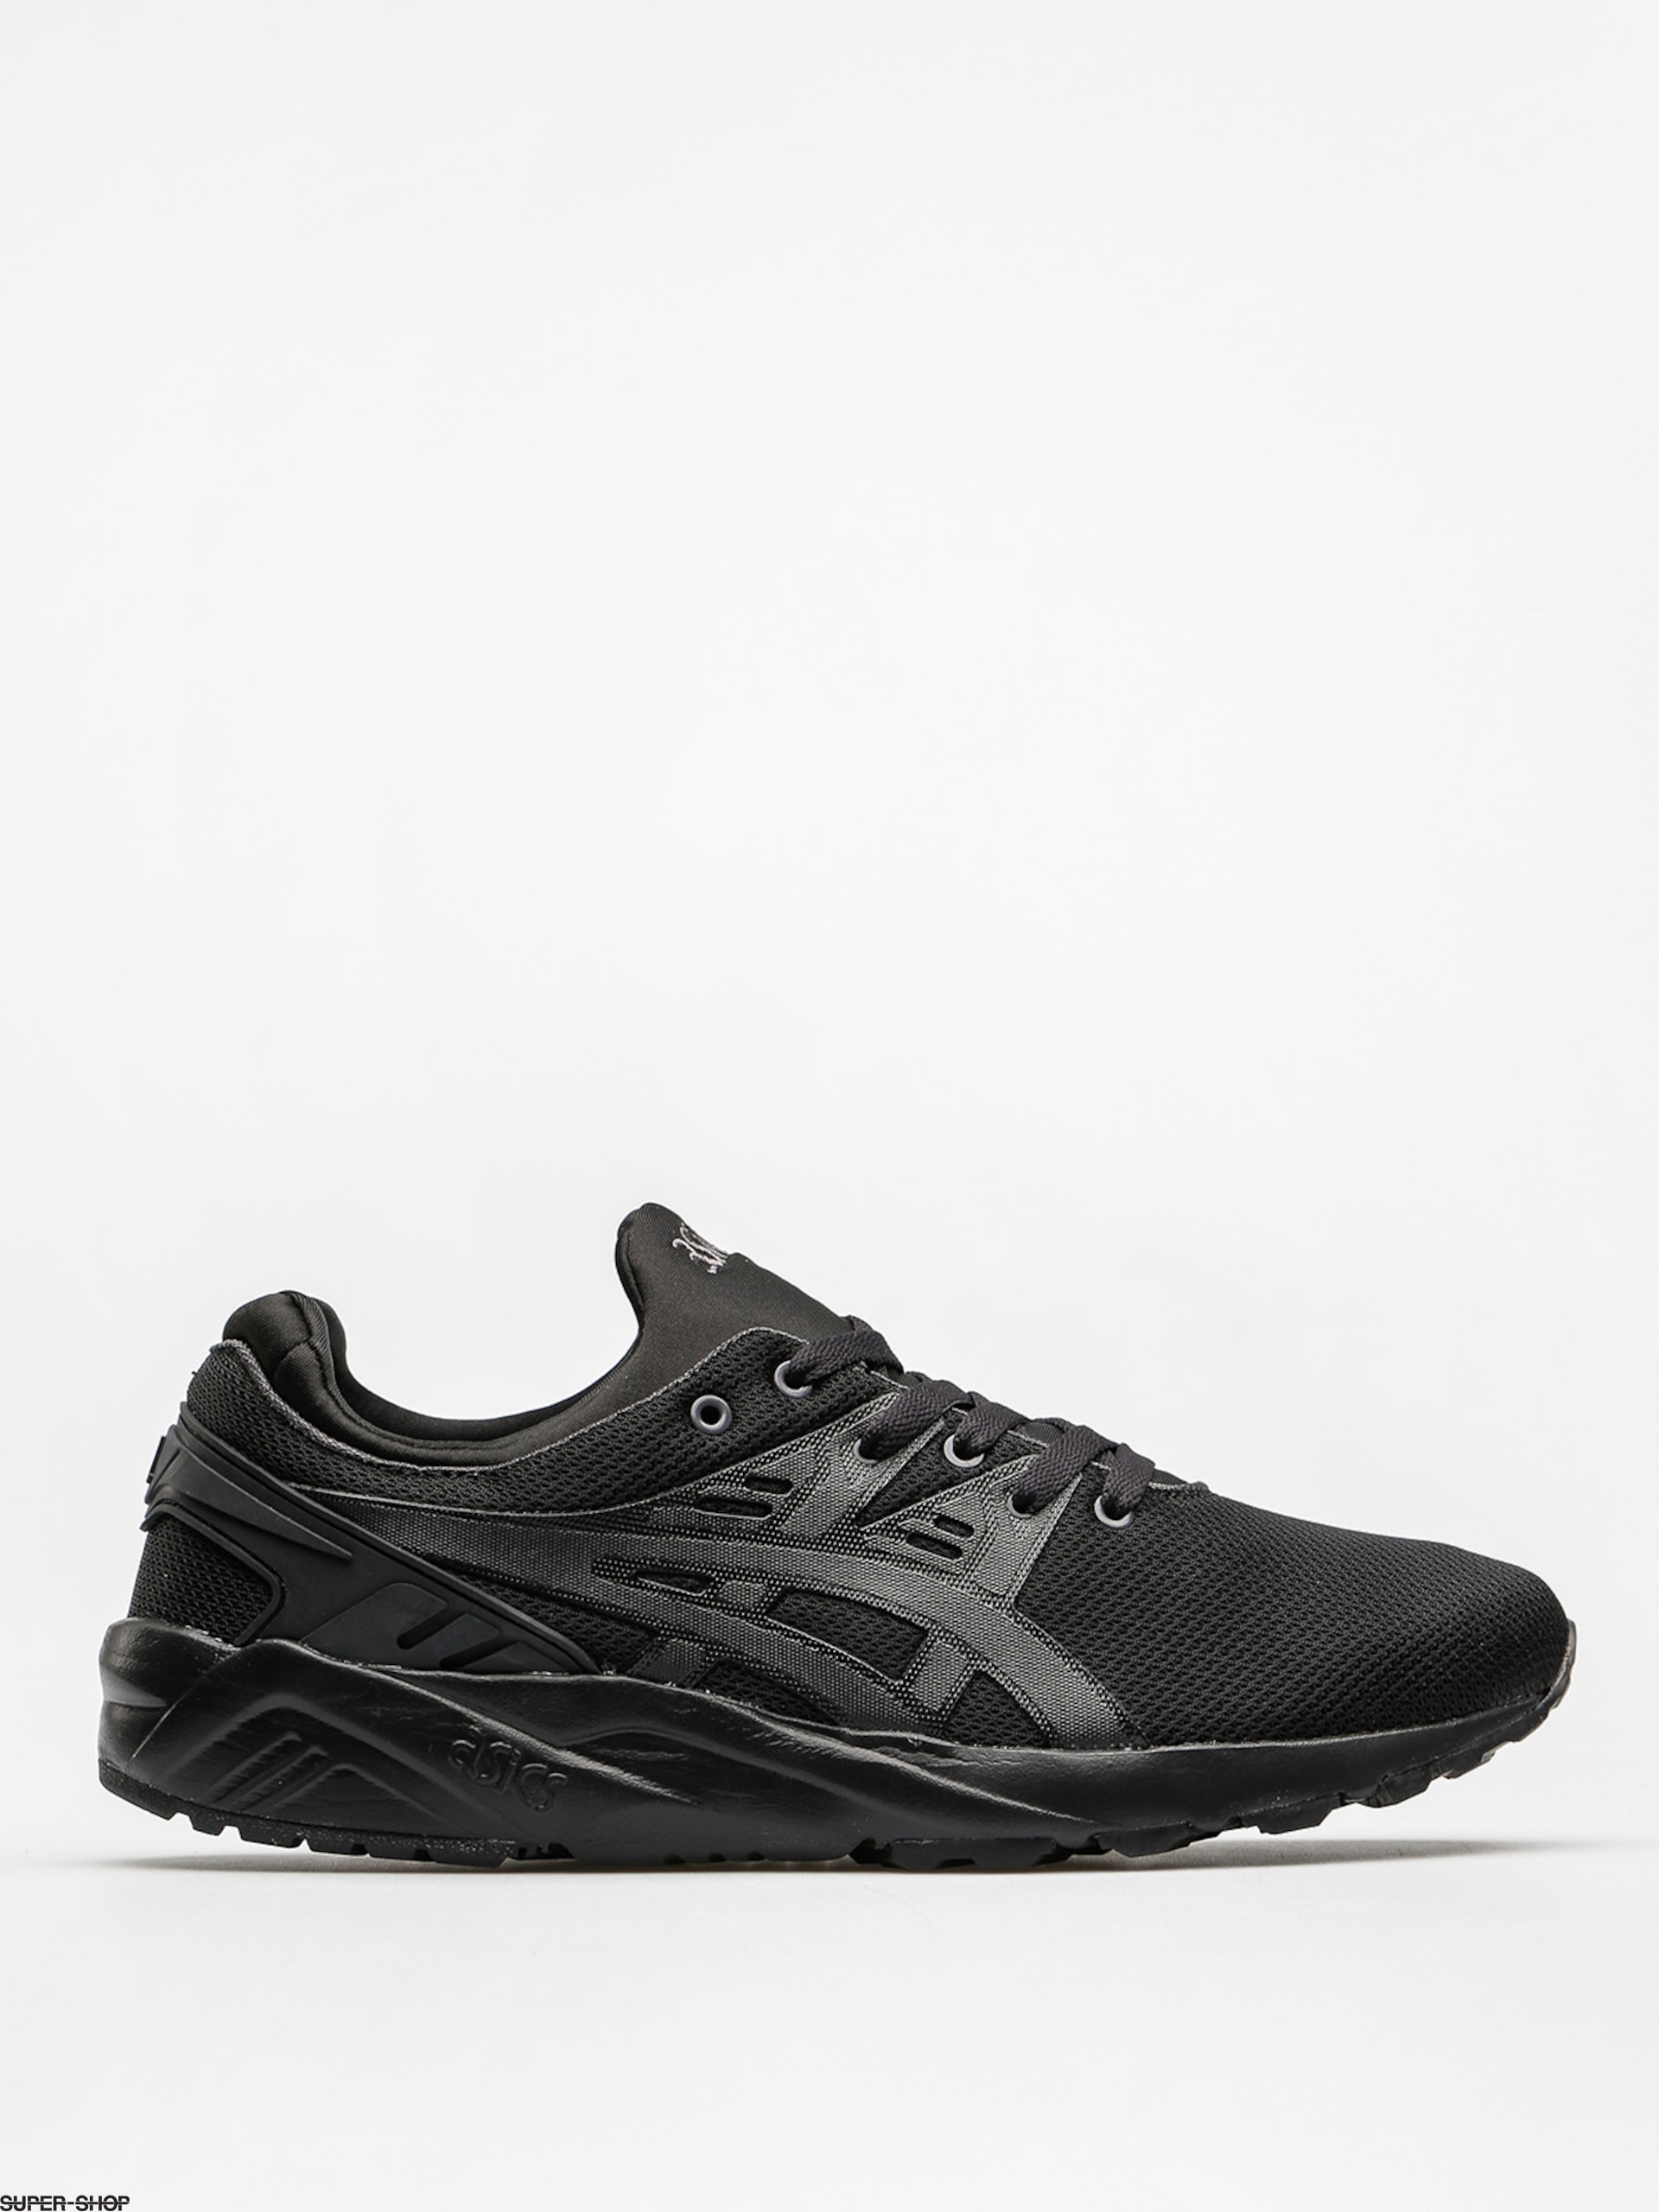 Asics Shoes Gel Kayano Trainer Evo